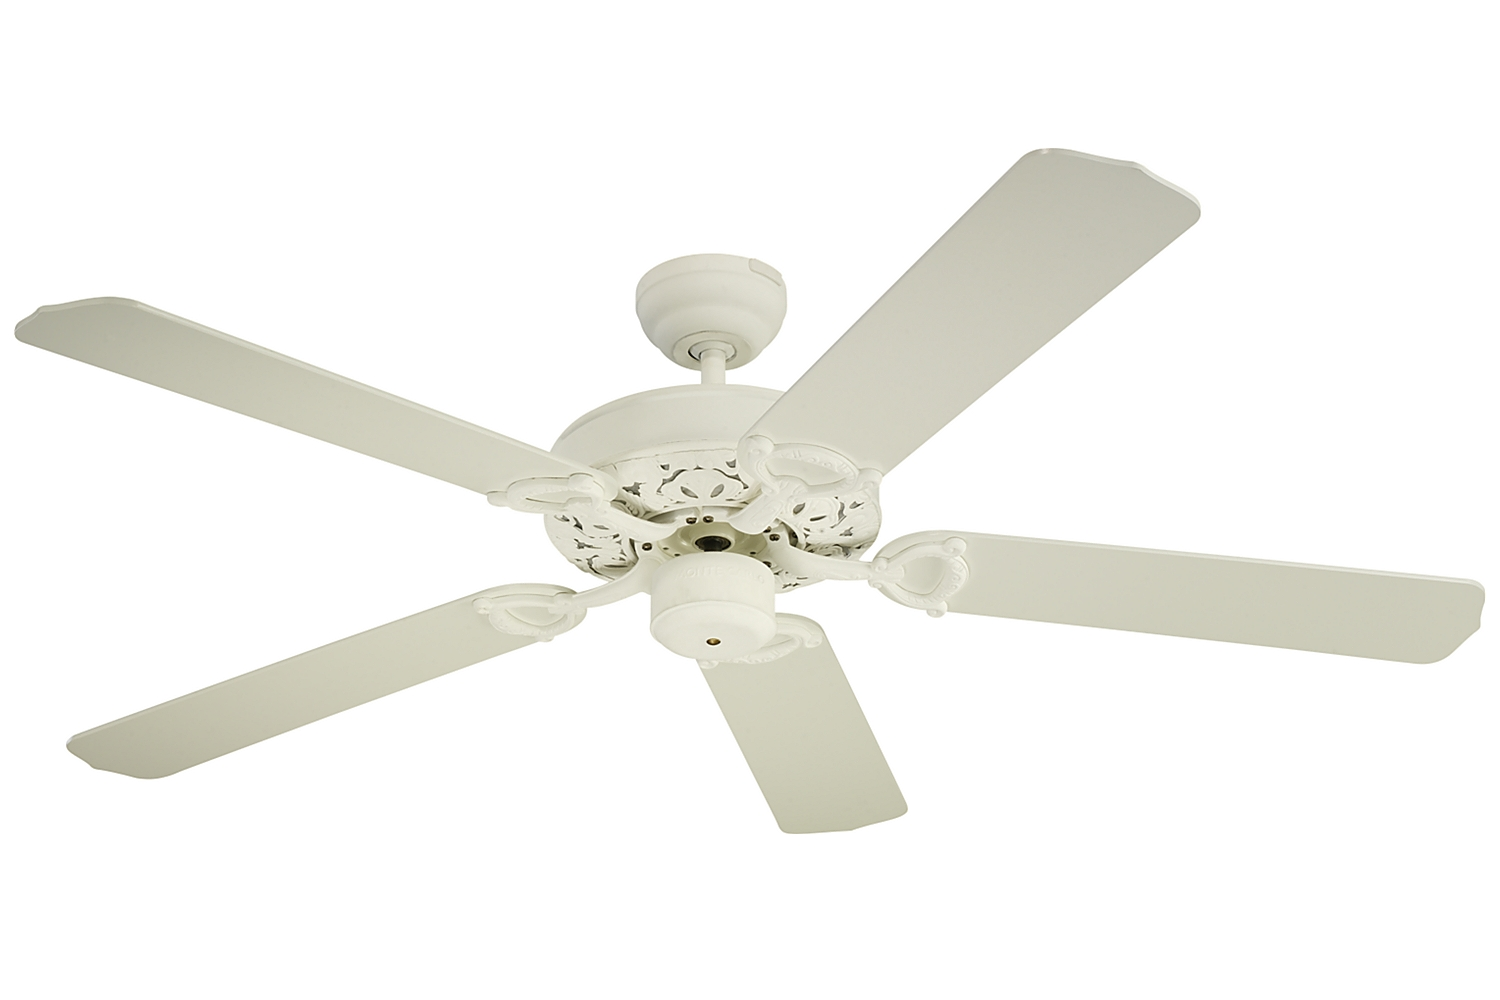 5or52tw52 Ornate Fan Textured Whitetextured White Electric Without Blade Manufacturers Loading Zoom